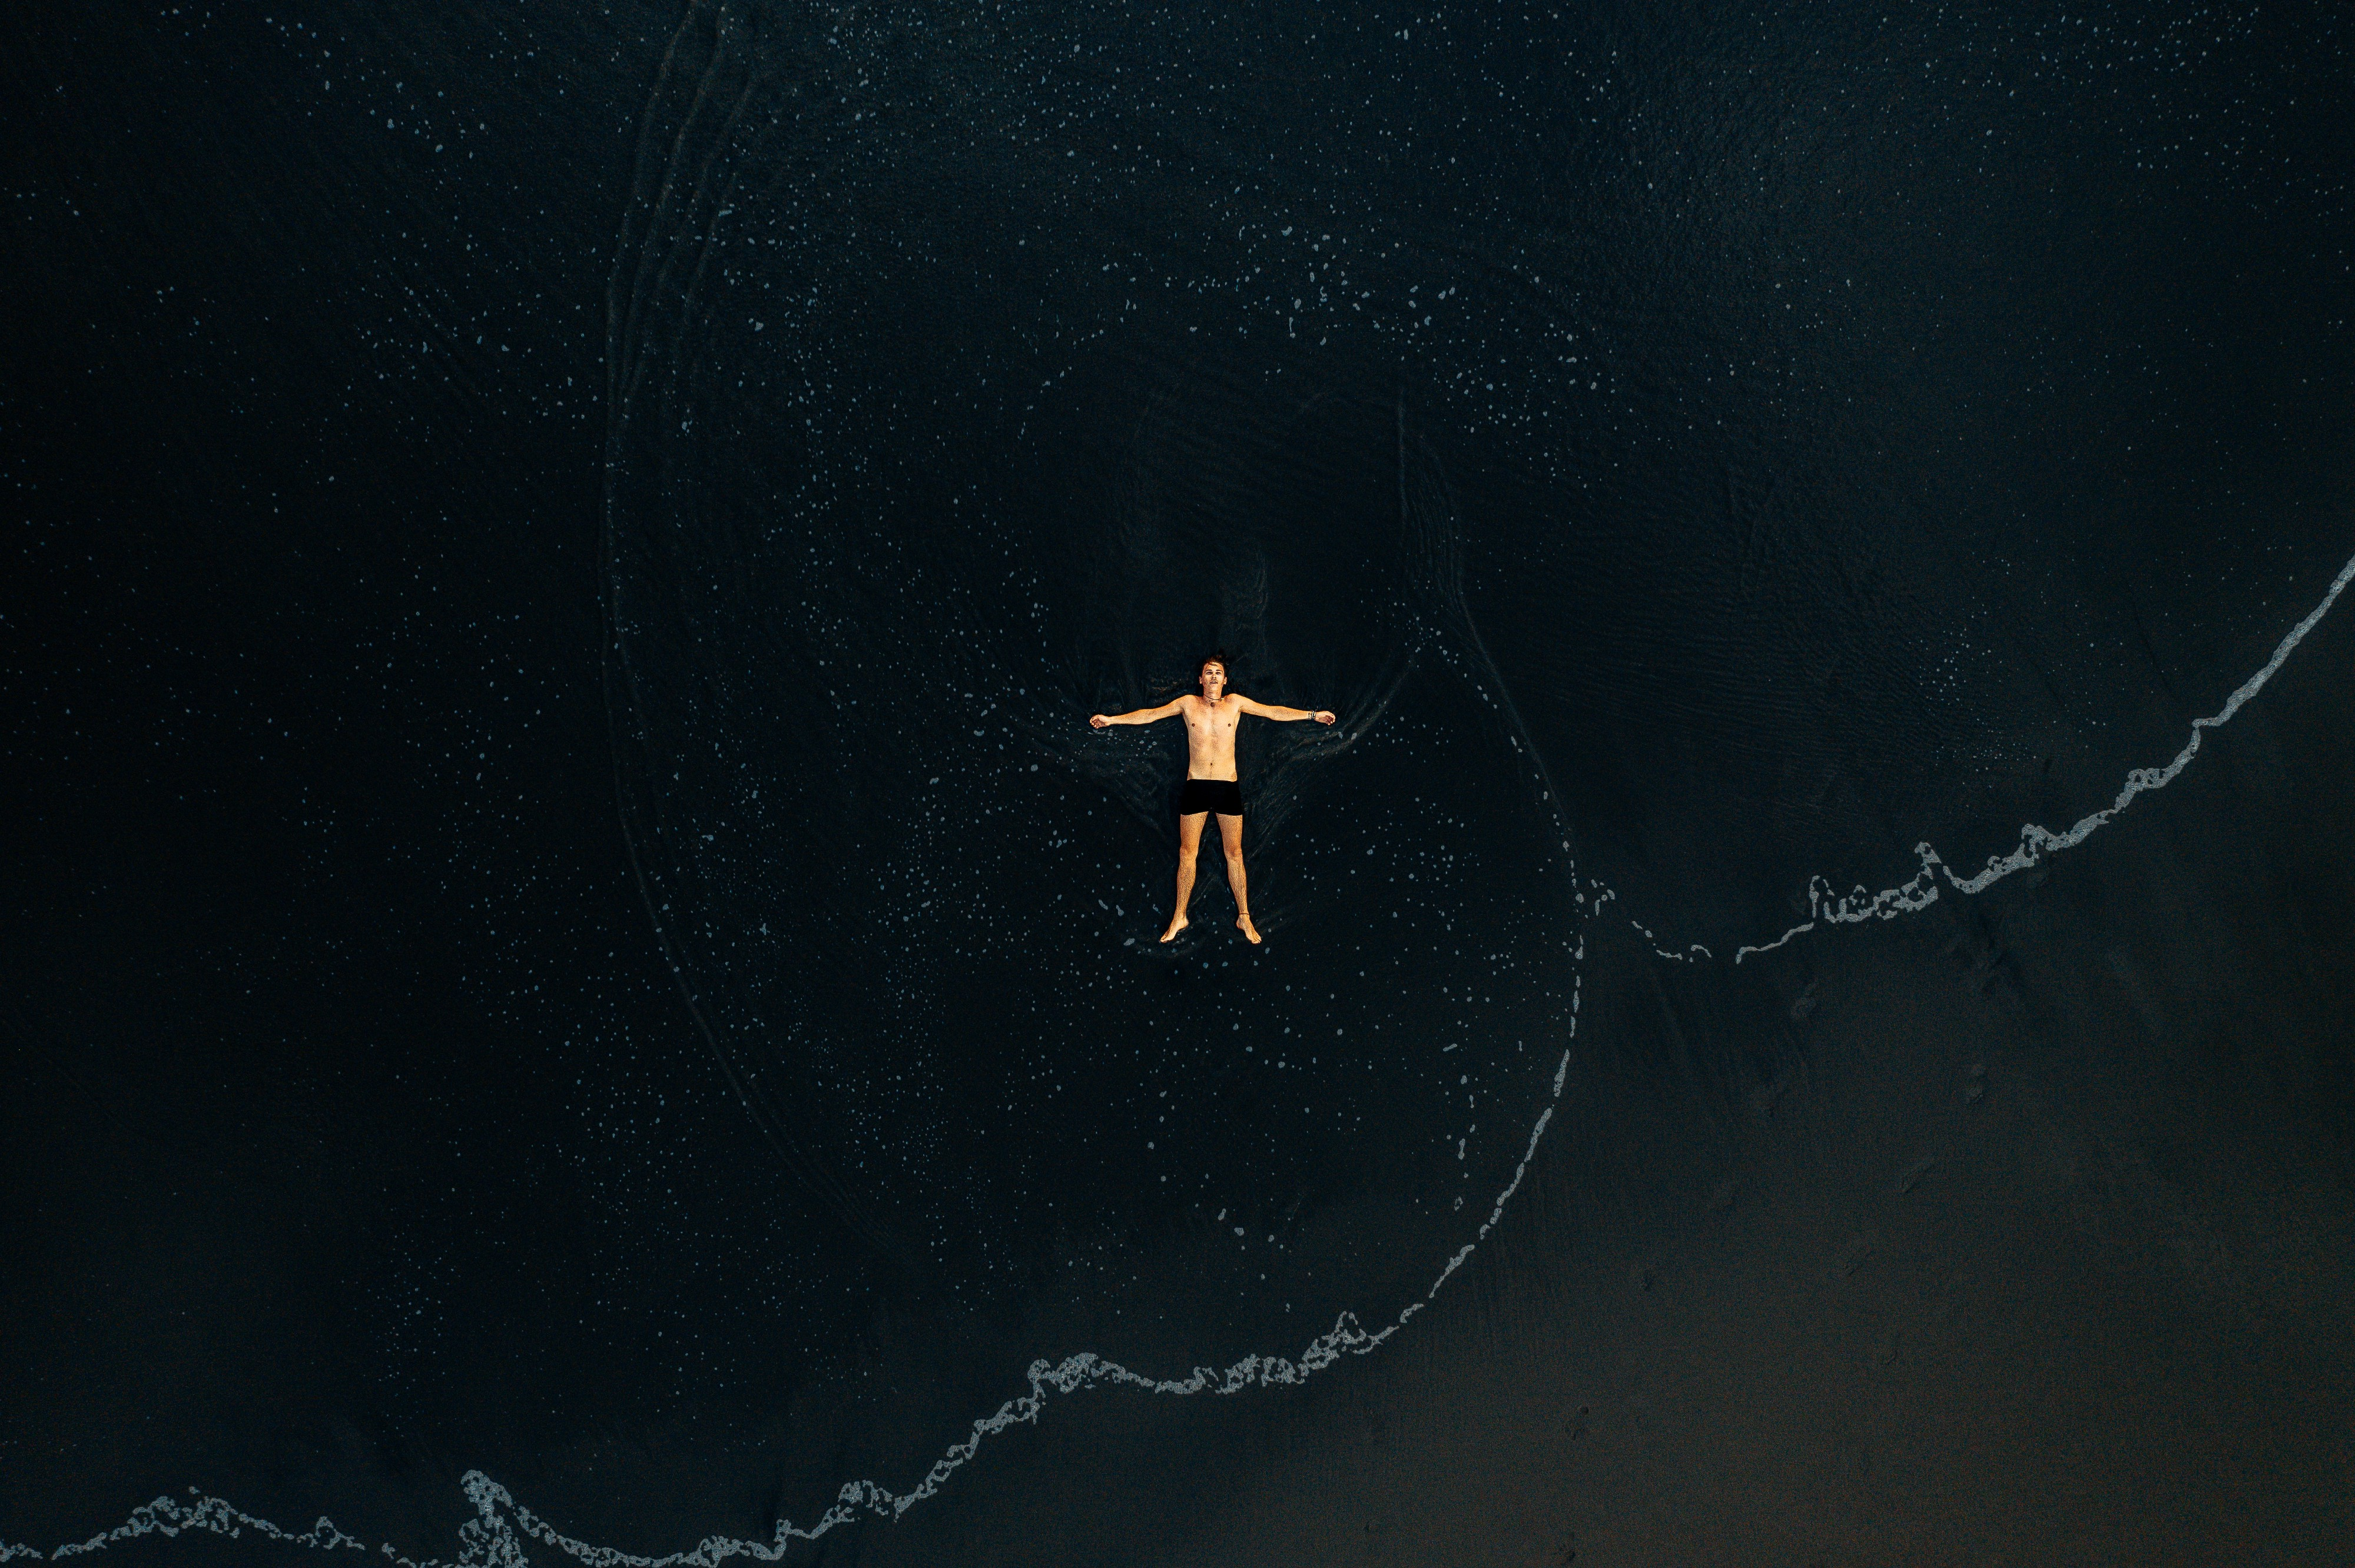 An aerial view of a person floating on their back in water but could almost be mistaken for floating in the vastness of space.